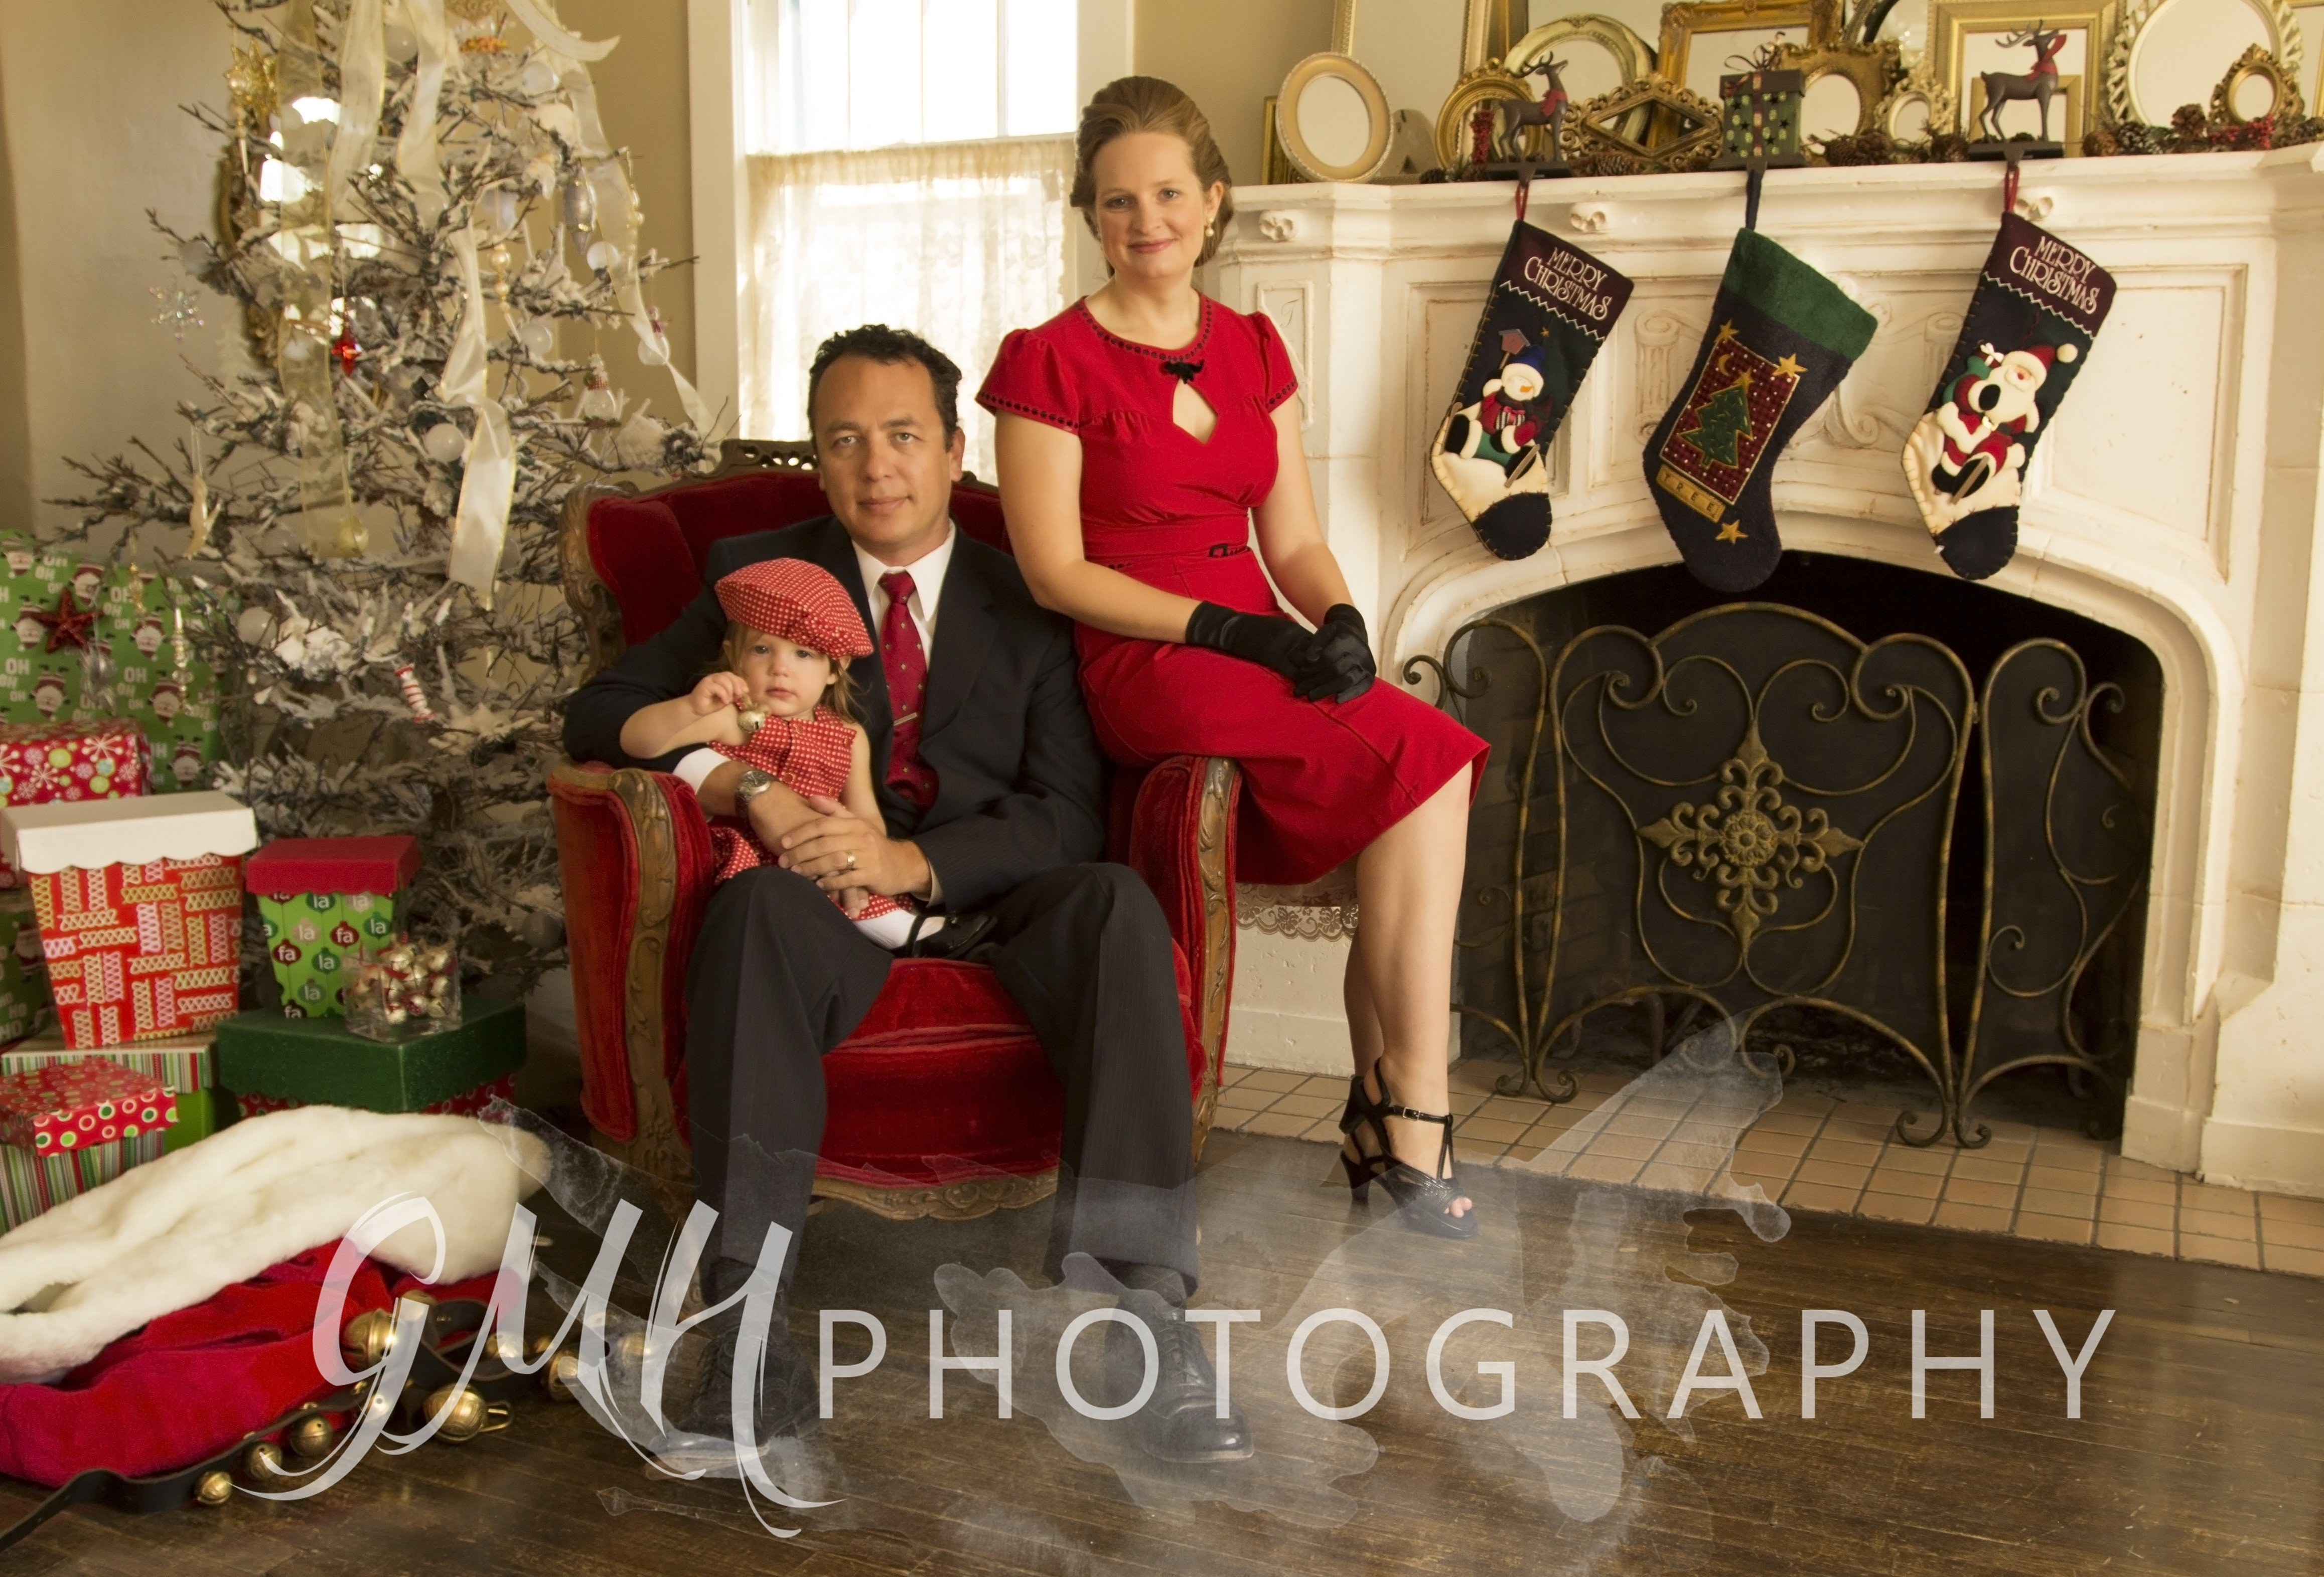 10 Trendy Family Christmas Photo Ideas With Baby unique formal family photo shoot ideas compilation photo and 1 2020